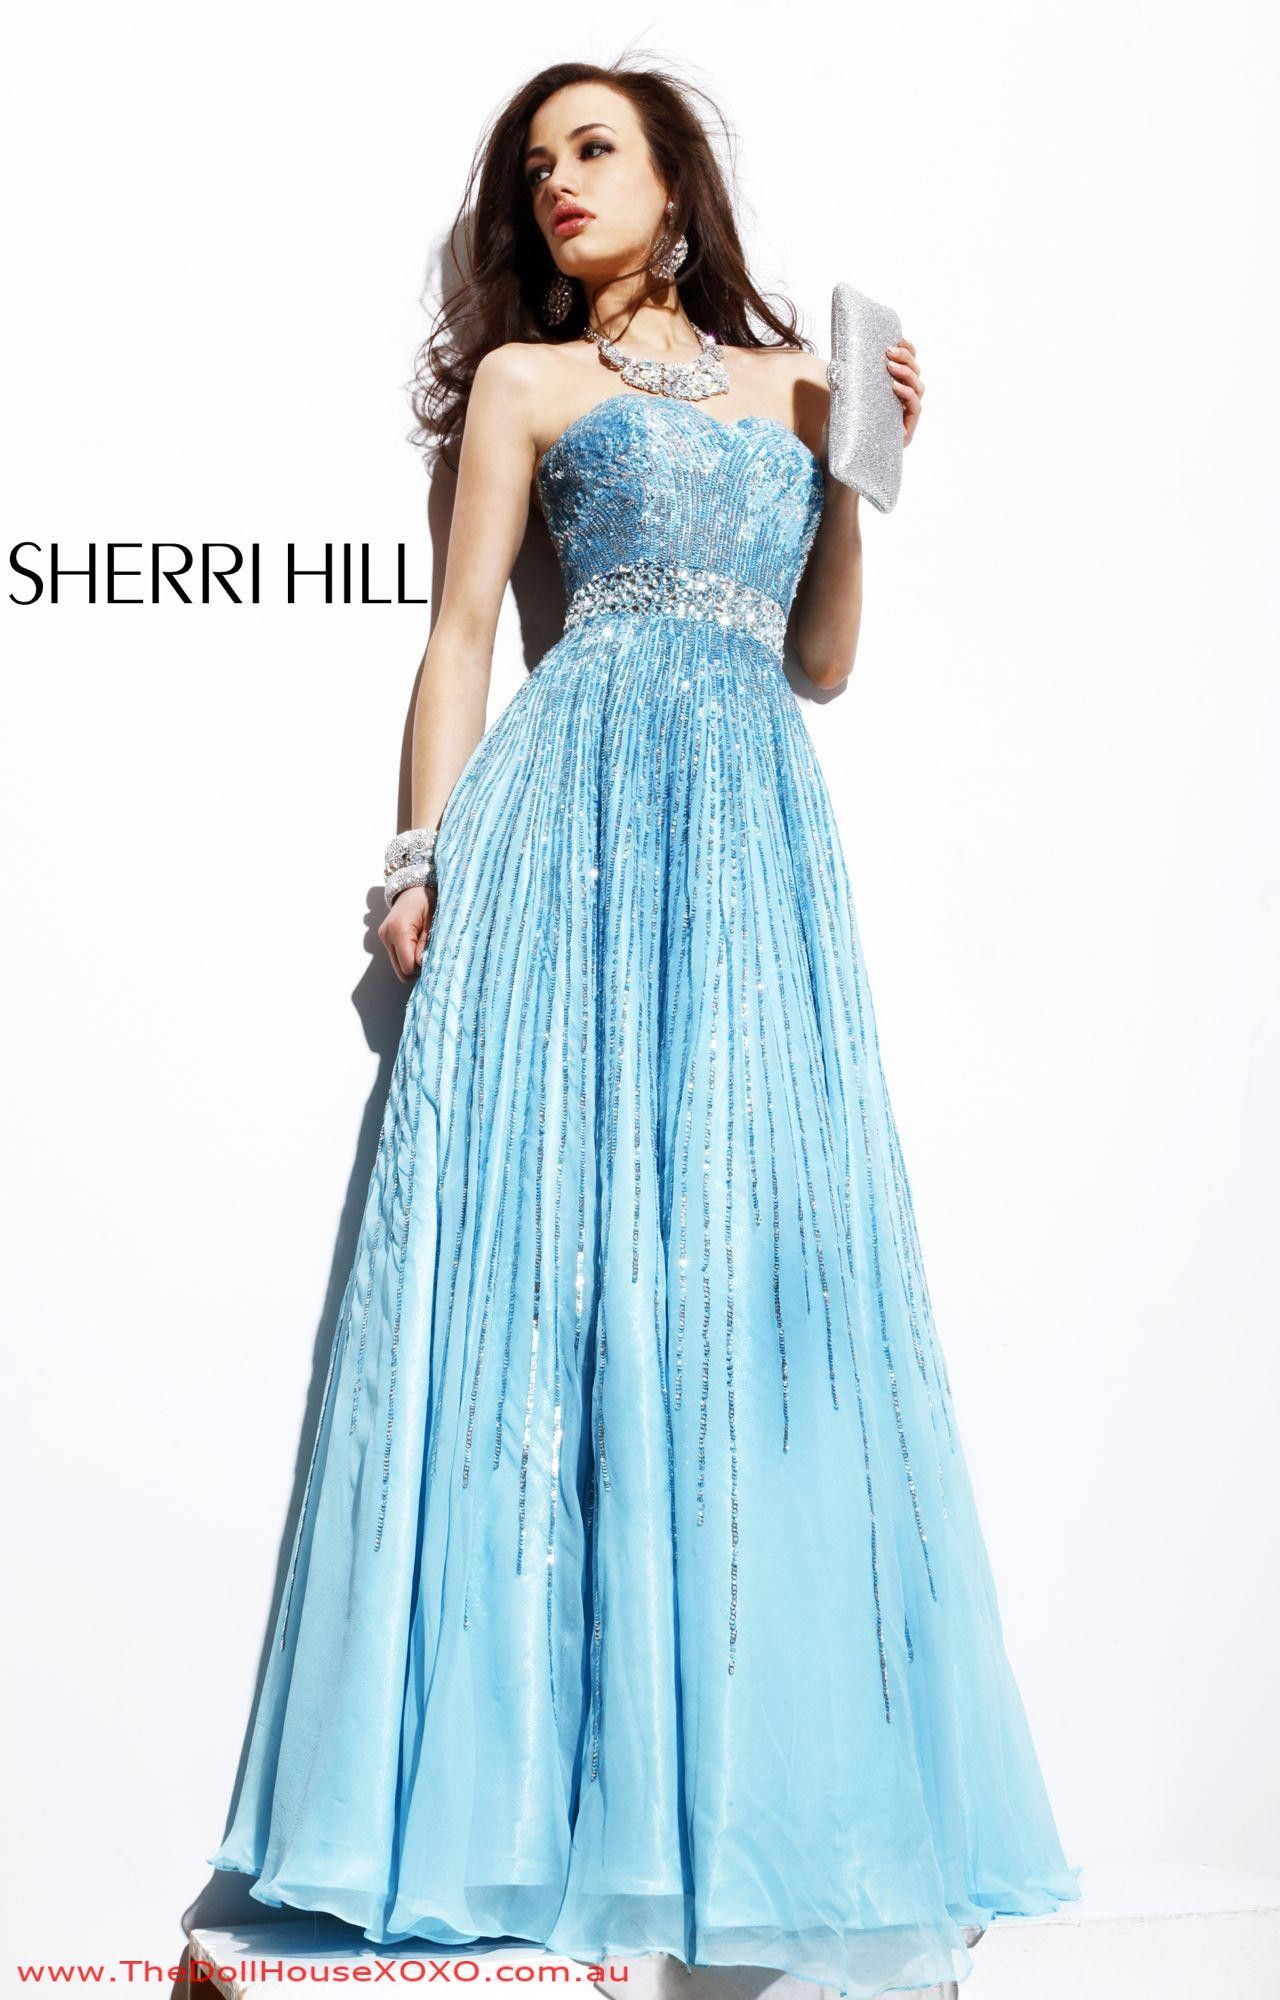 Sherri hill bridesmaid the doll house love duv xoxo wedding